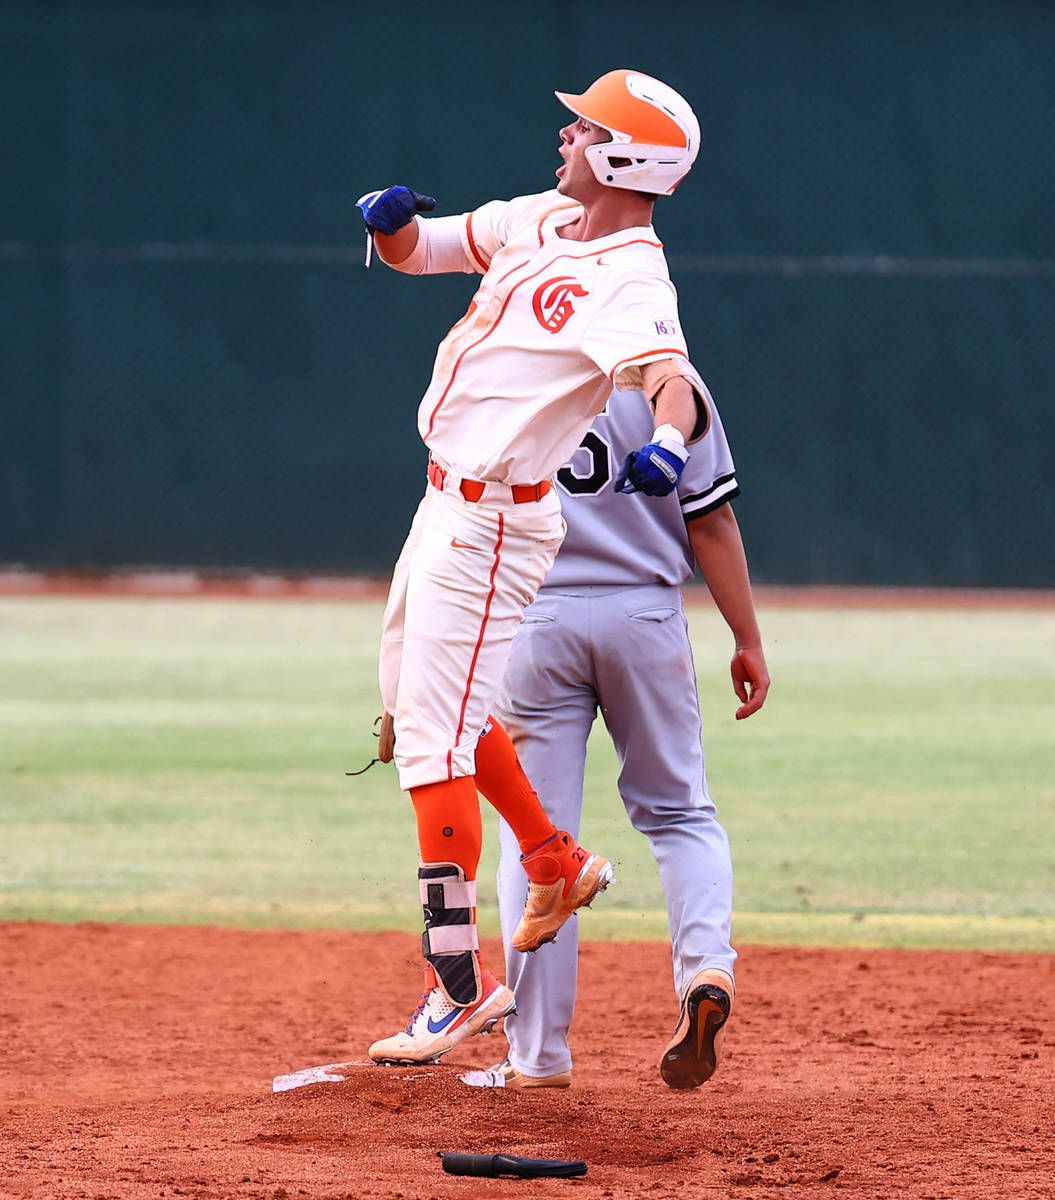 Bishop Gorman HighÕs right fielder Tyler Whitaker celebrates after hitting a double and 2r ...